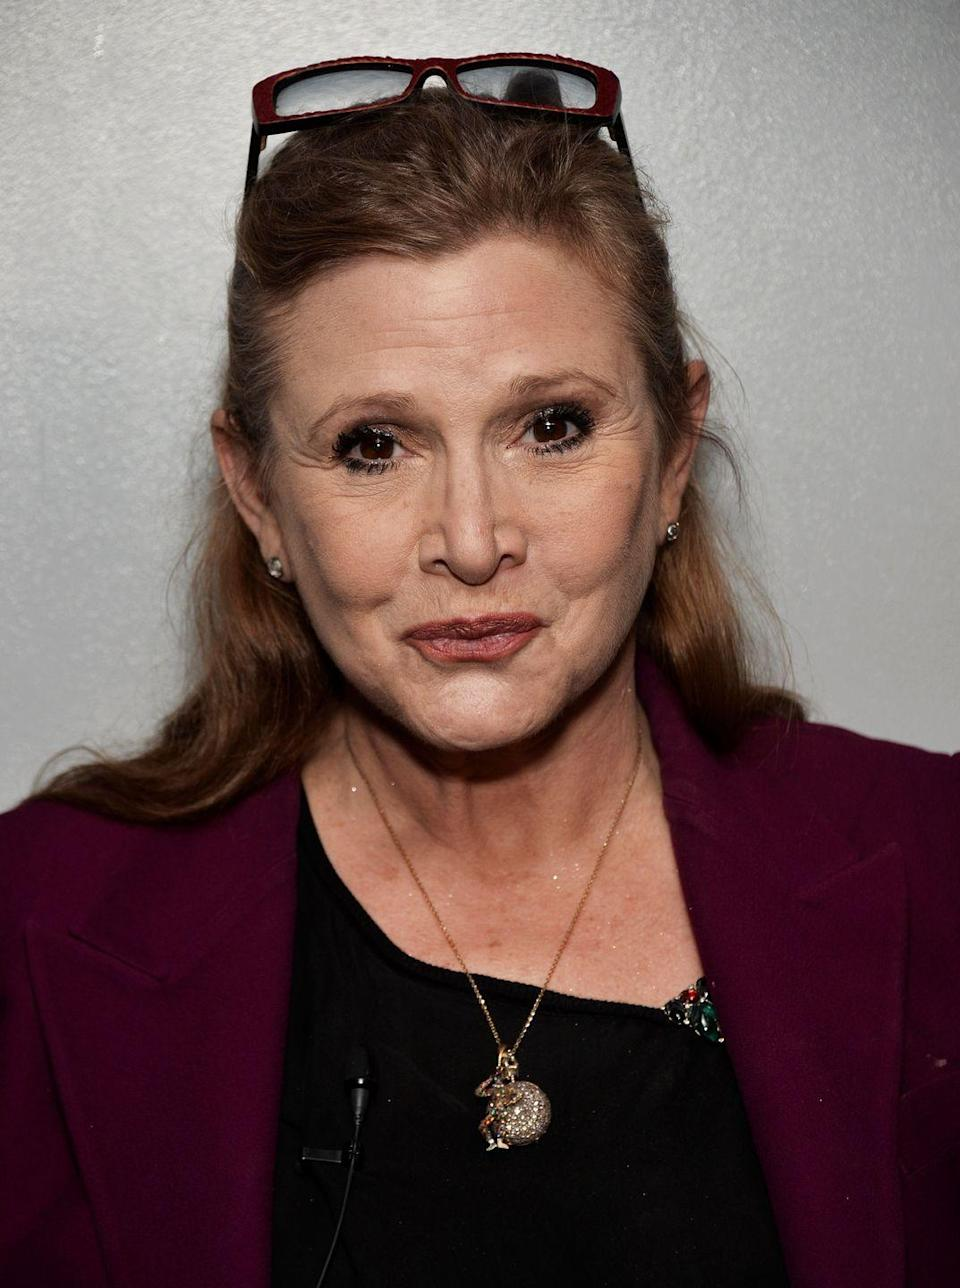 """<p>""""One of the things that baffles me (and there are quite a few) is how there can be so much lingering stigma with regards to mental illness, specifically bipolar disorder,"""" the <em>Star Wars </em>actress <a href=""""http://ew.com/news/2016/12/28/carrie-fisher-quotes-mental-health/"""" rel=""""nofollow noopener"""" target=""""_blank"""" data-ylk=""""slk:wrote"""" class=""""link rapid-noclick-resp"""">wrote</a> in her memoir <em><a href=""""https://www.amazon.com/Wishful-Drinking-Carrie-Fisher/dp/143915371X?tag=syn-yahoo-20&ascsubtag=%5Bartid%7C10063.g.36459994%5Bsrc%7Cyahoo-us"""" rel=""""nofollow noopener"""" target=""""_blank"""" data-ylk=""""slk:Wishful Drinking"""" class=""""link rapid-noclick-resp"""">Wishful Drinking</a>.</em> """"In my opinion, living with manic depression takes a tremendous amount of balls.""""</p>"""